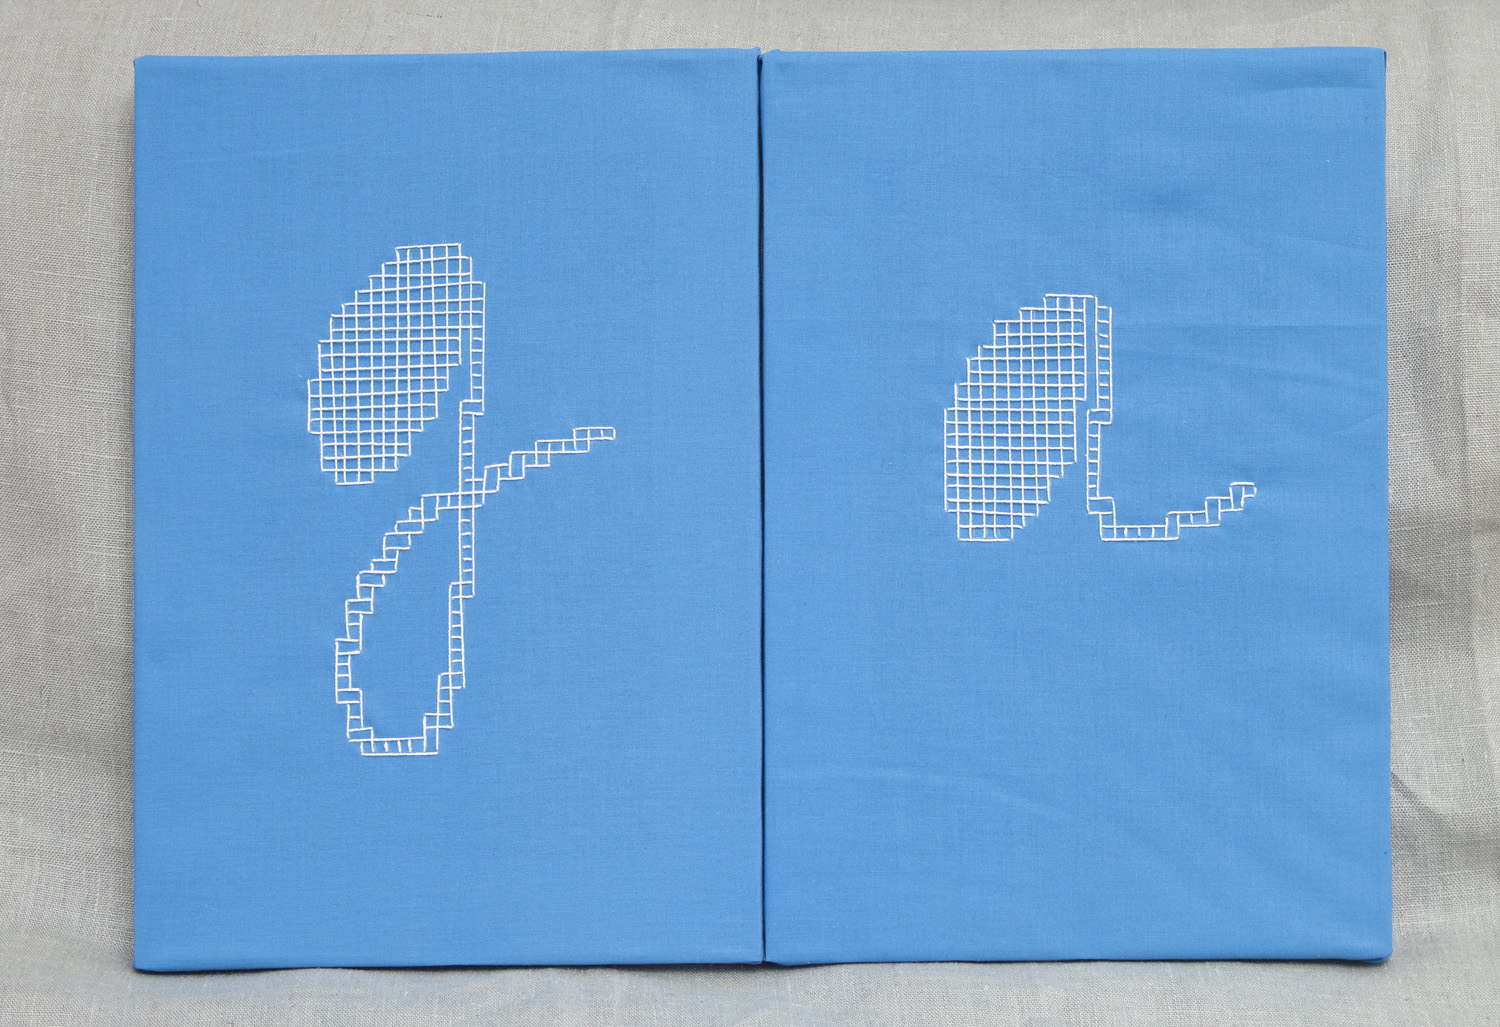 Linear    24x35 cm each, cotton fabric, embroidery  solo exhibition, Roza Azora Gallery Moscow, October 2014  © lisa olshanskaya